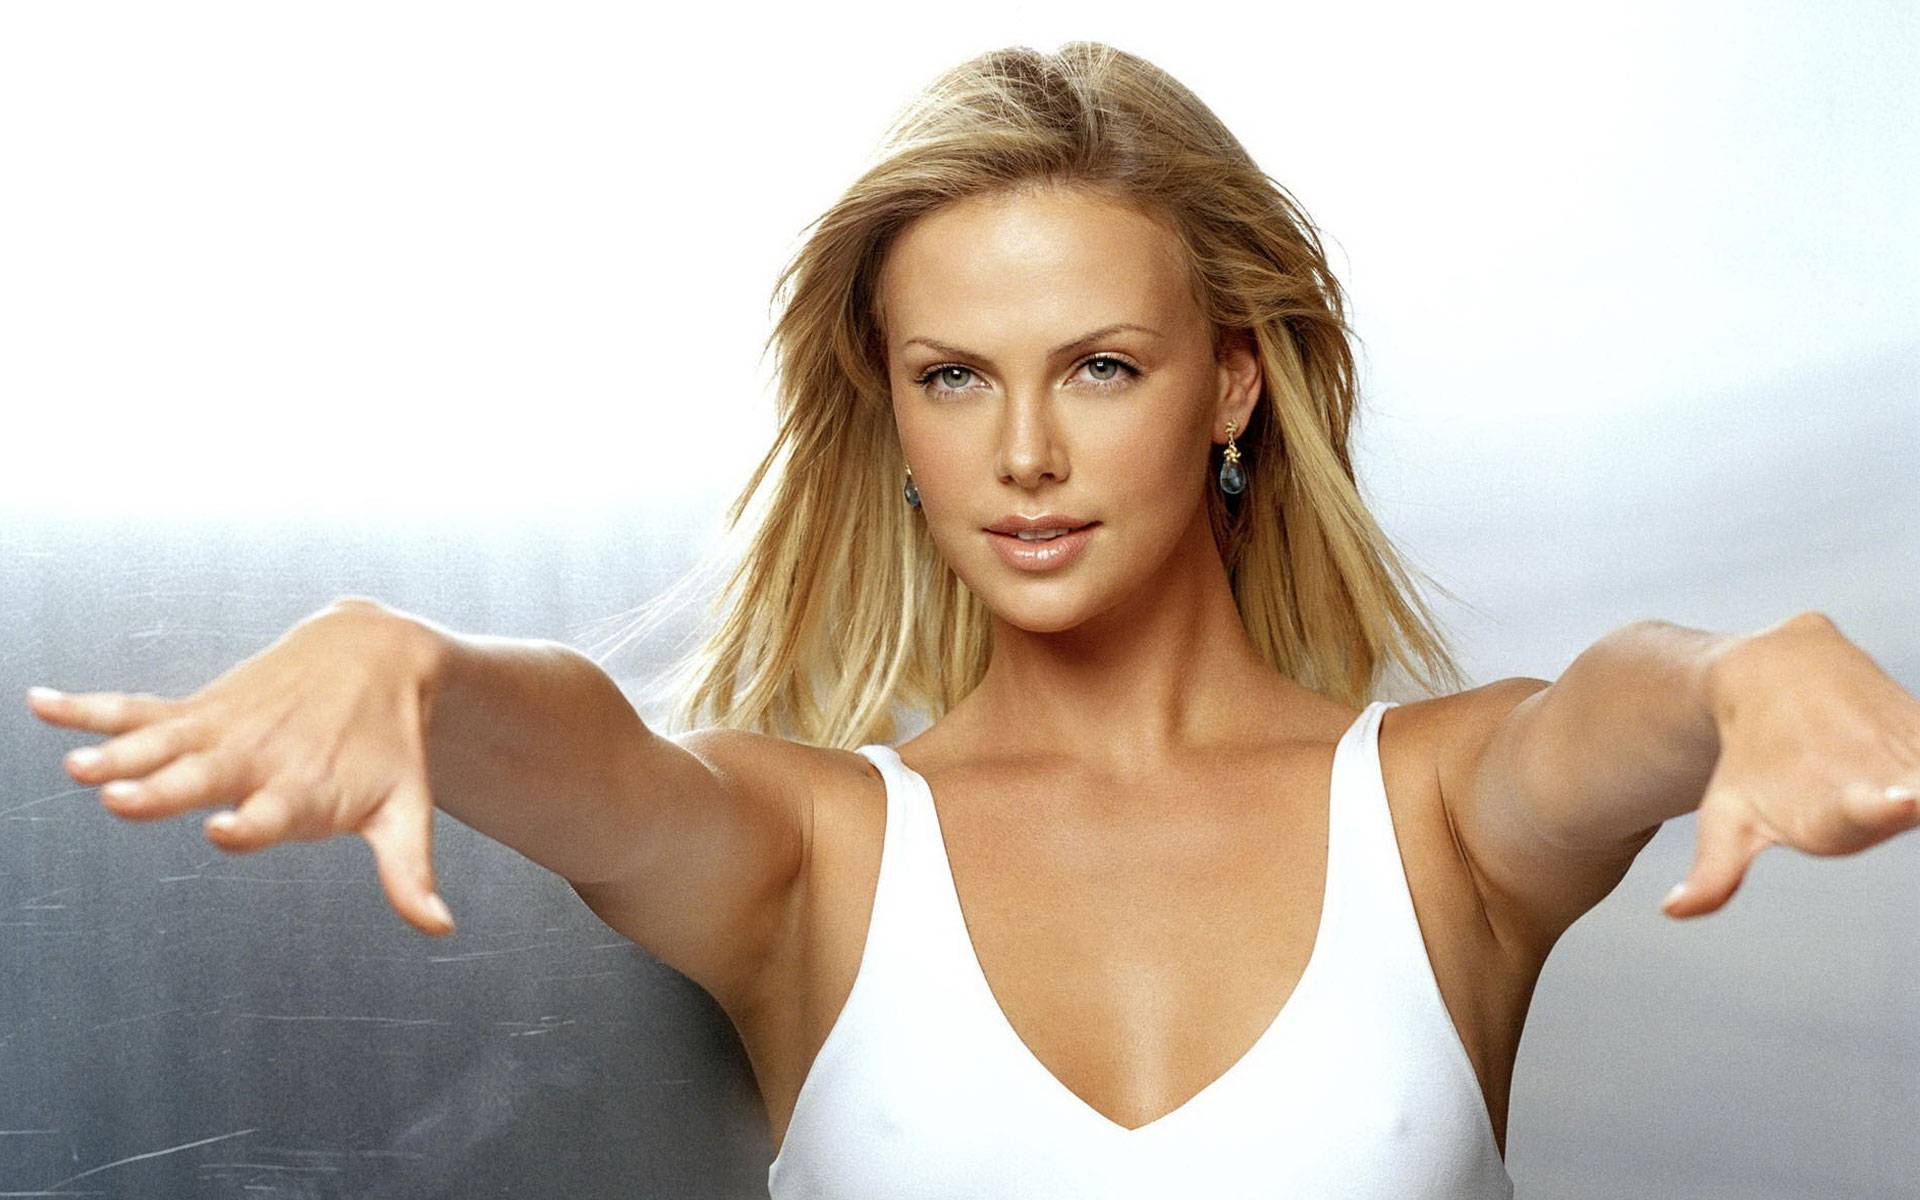 Charlize-Theron-Dancing-1920x1200-Wallpaper-001.jpg